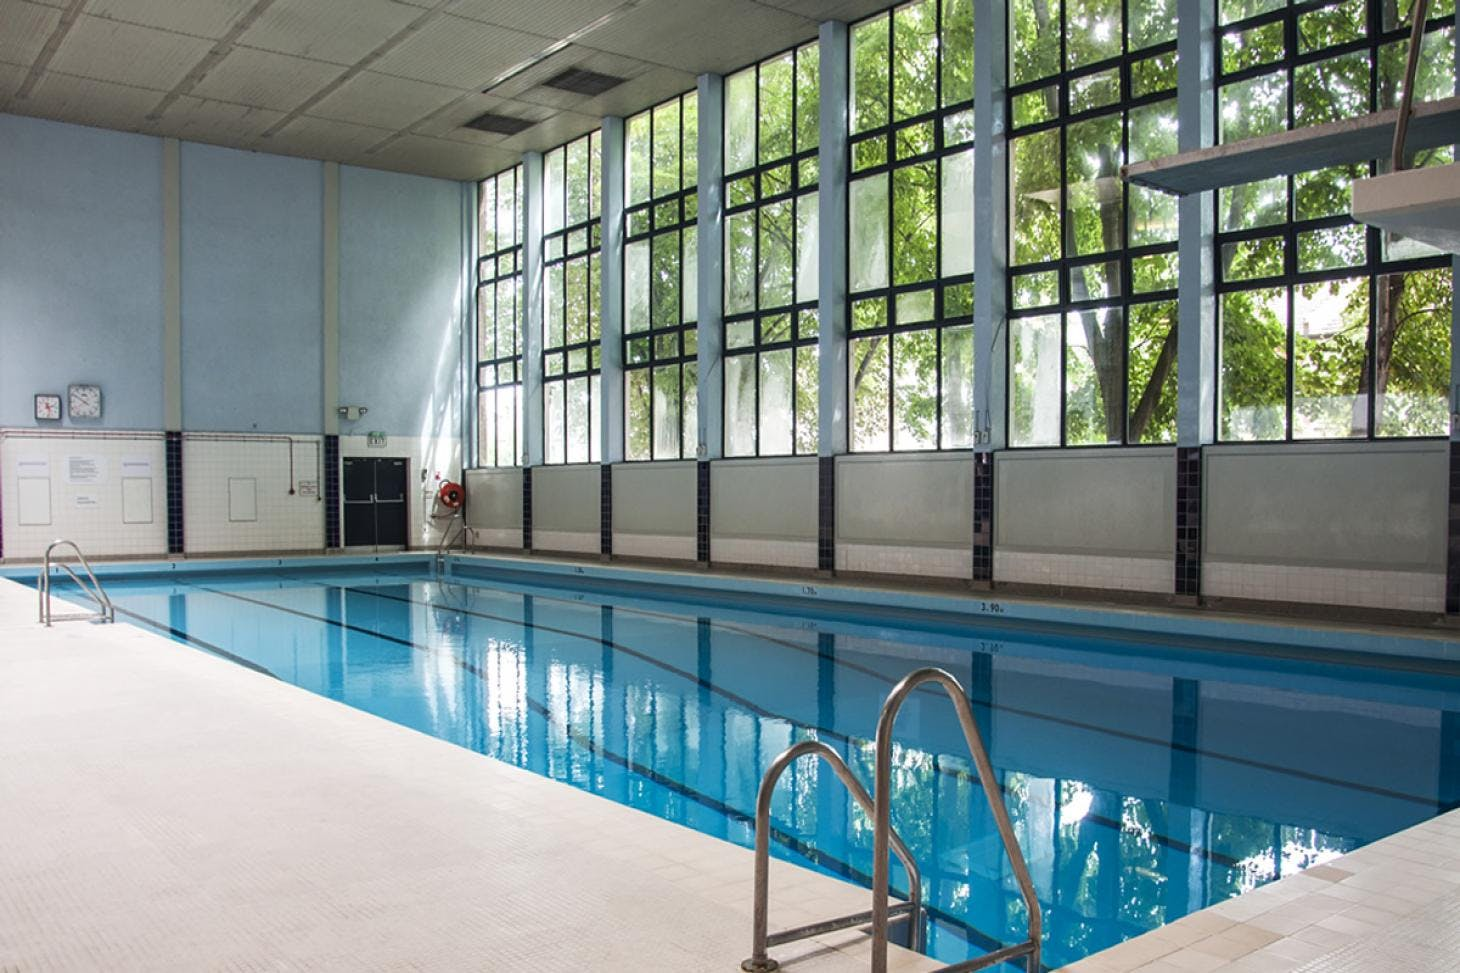 Charing Cross Sports Club Indoor swimming pool